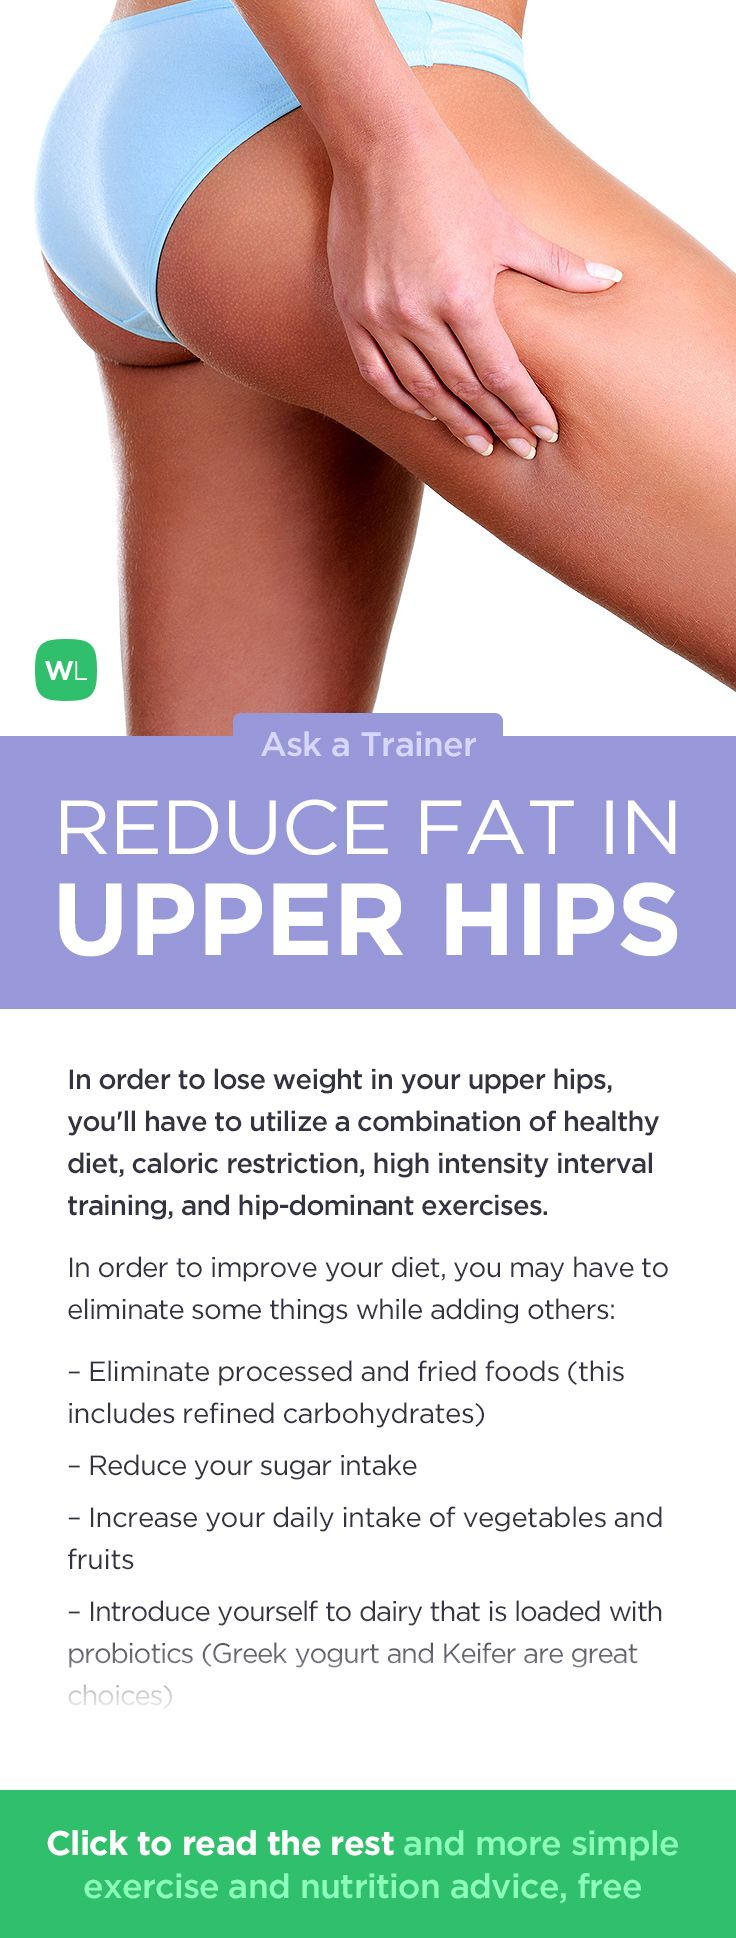 tips to reduce upper body fat